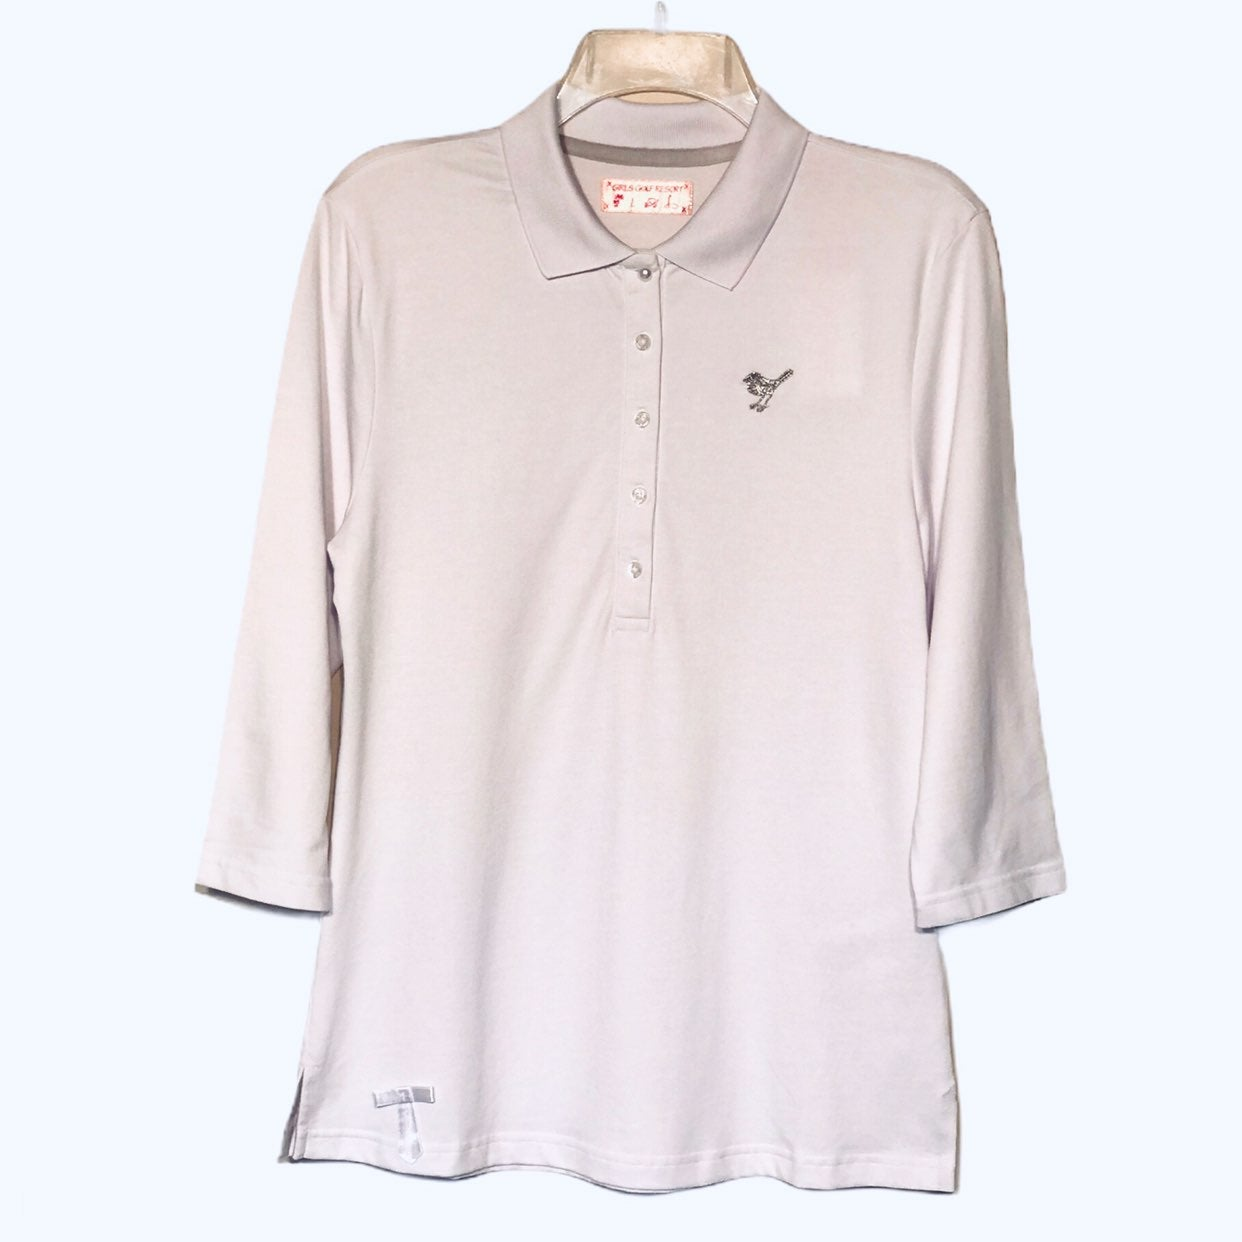 Girls Golf White Classic Golf Top